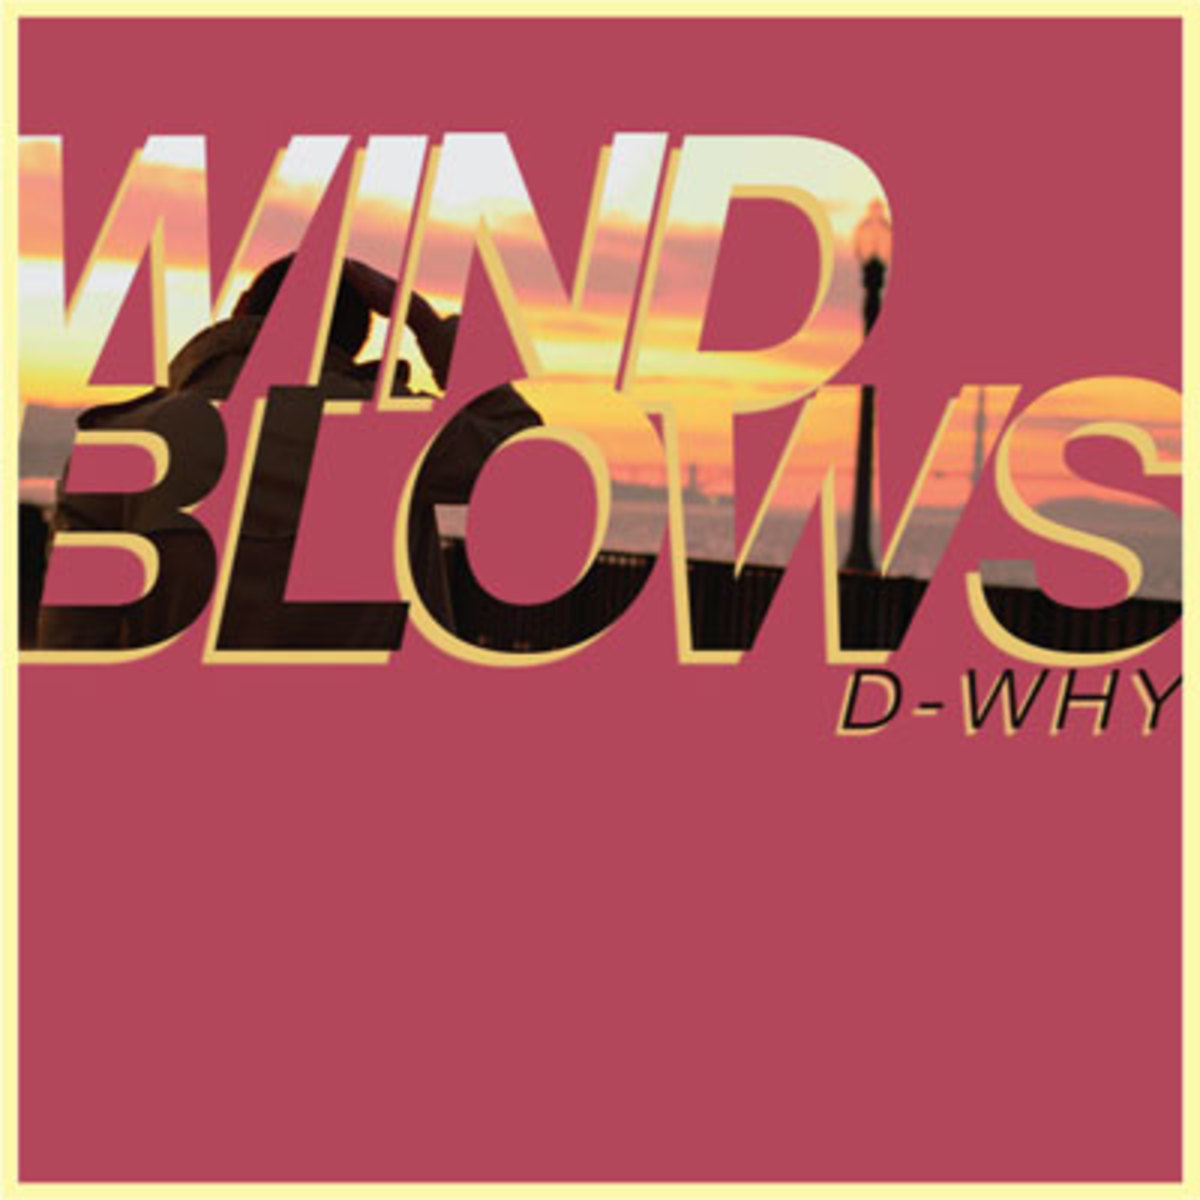 dwhy-windblows.jpg